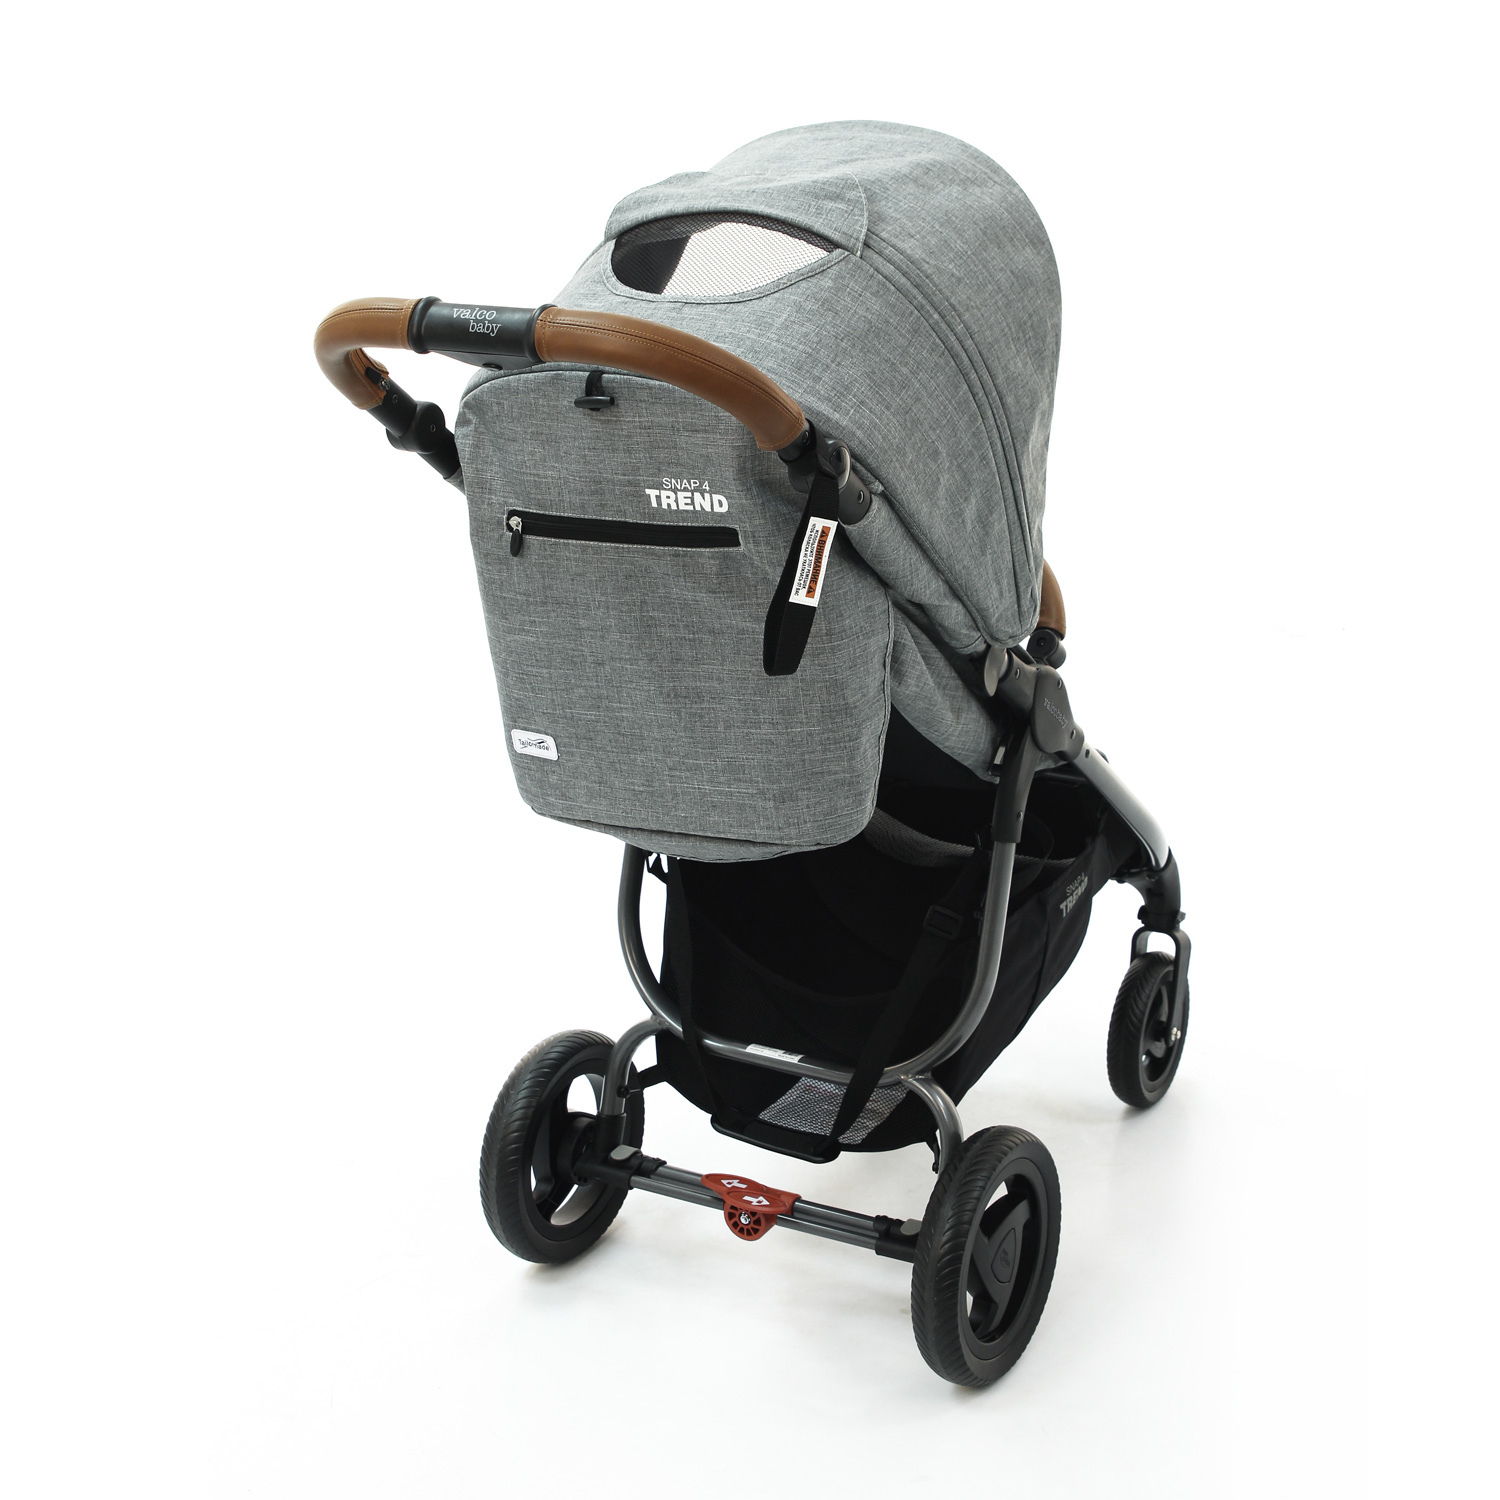 Прогулочная коляска Valco baby Trend 4 / Charcoal